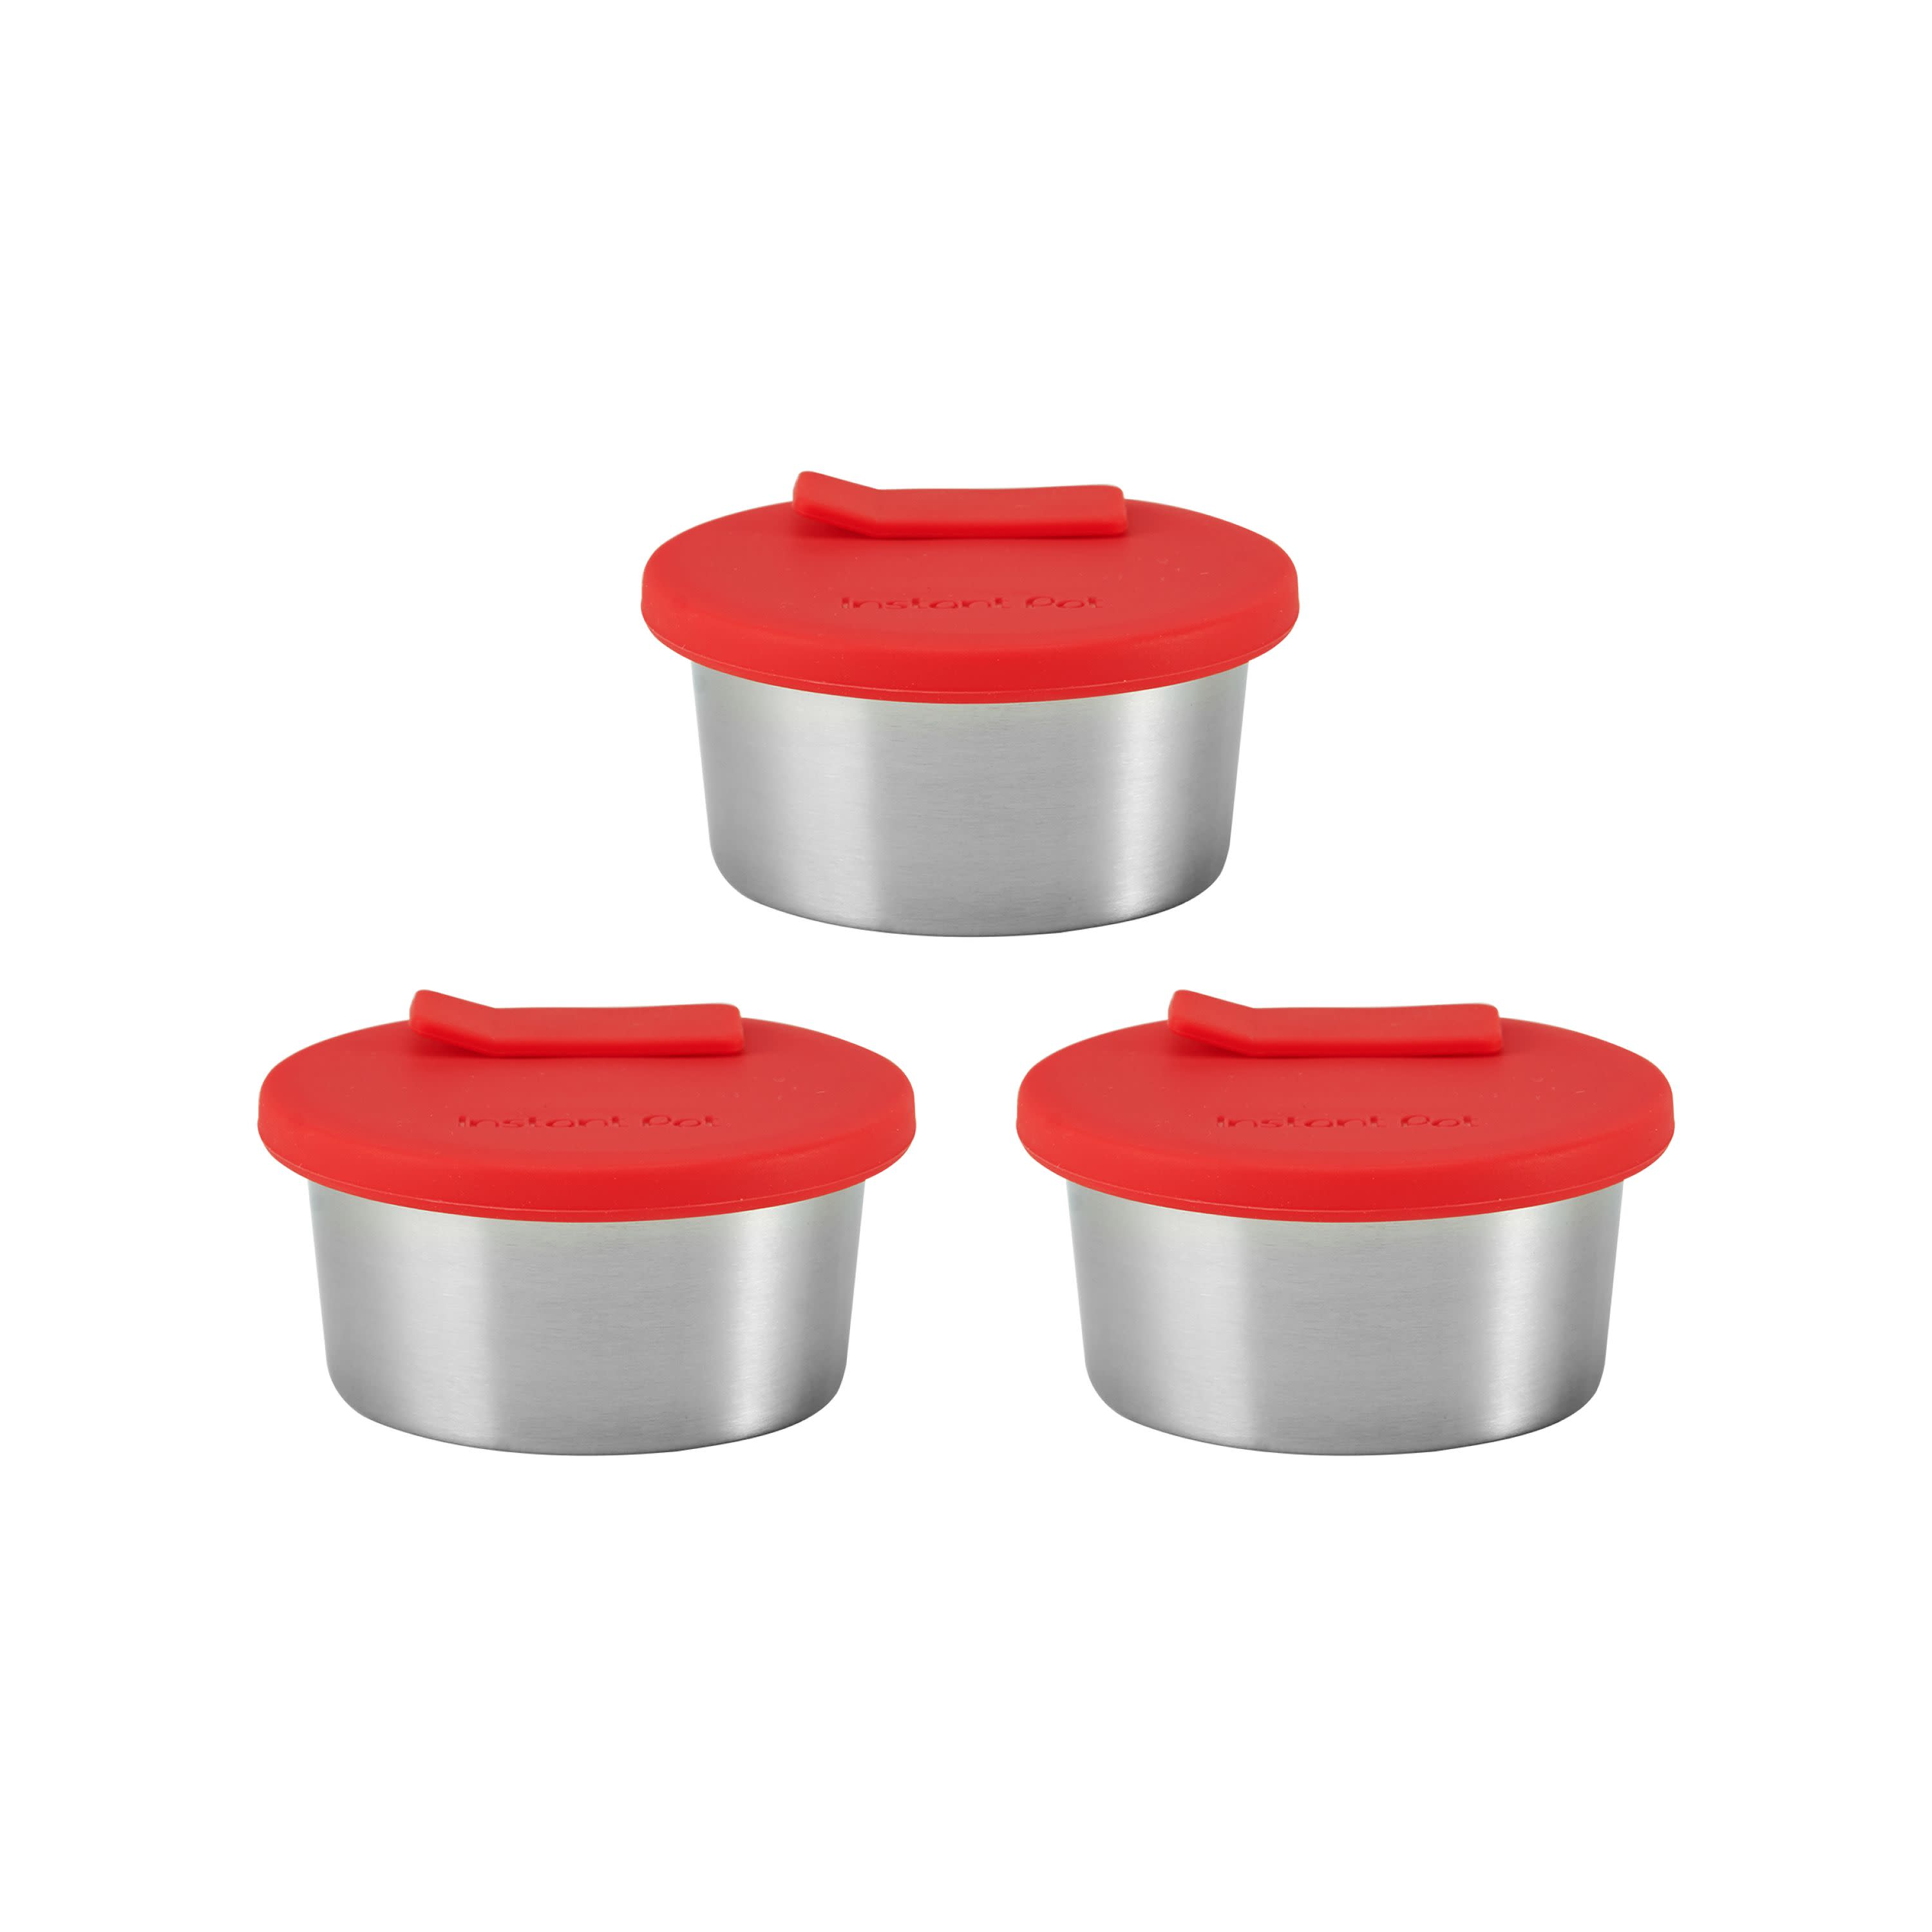 Red Instant Pot 5252093 Official Stainless Steel Baking Cups with Set of 3